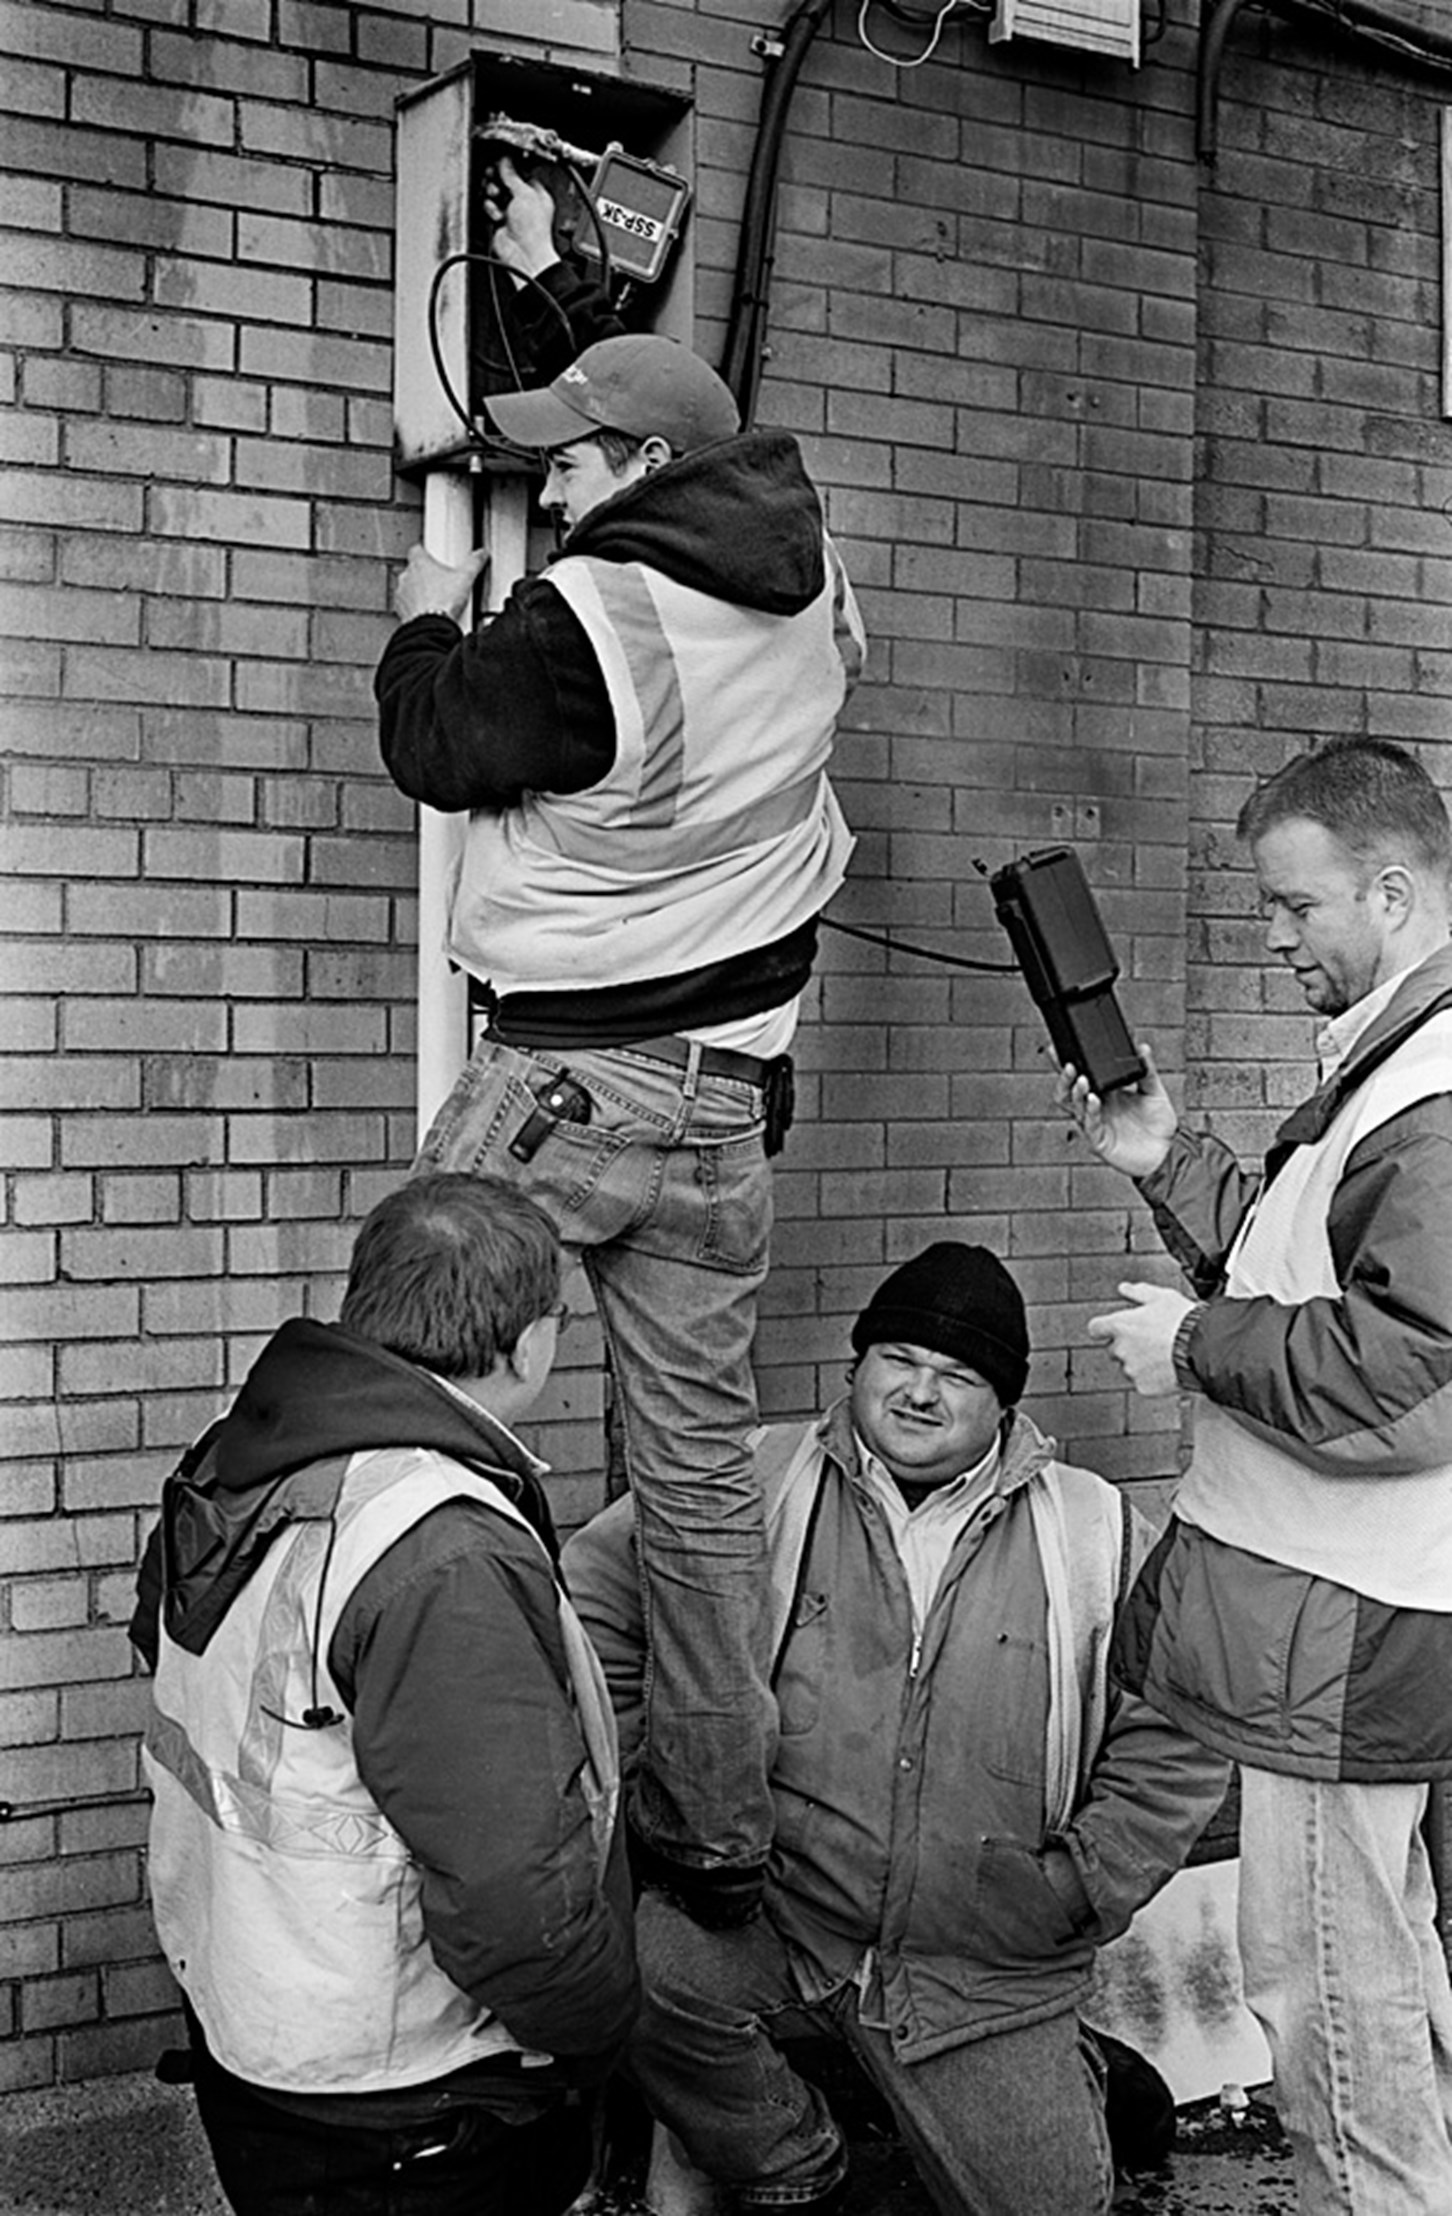 Human Step Ladder, Duluth, Minnesota, December 2007